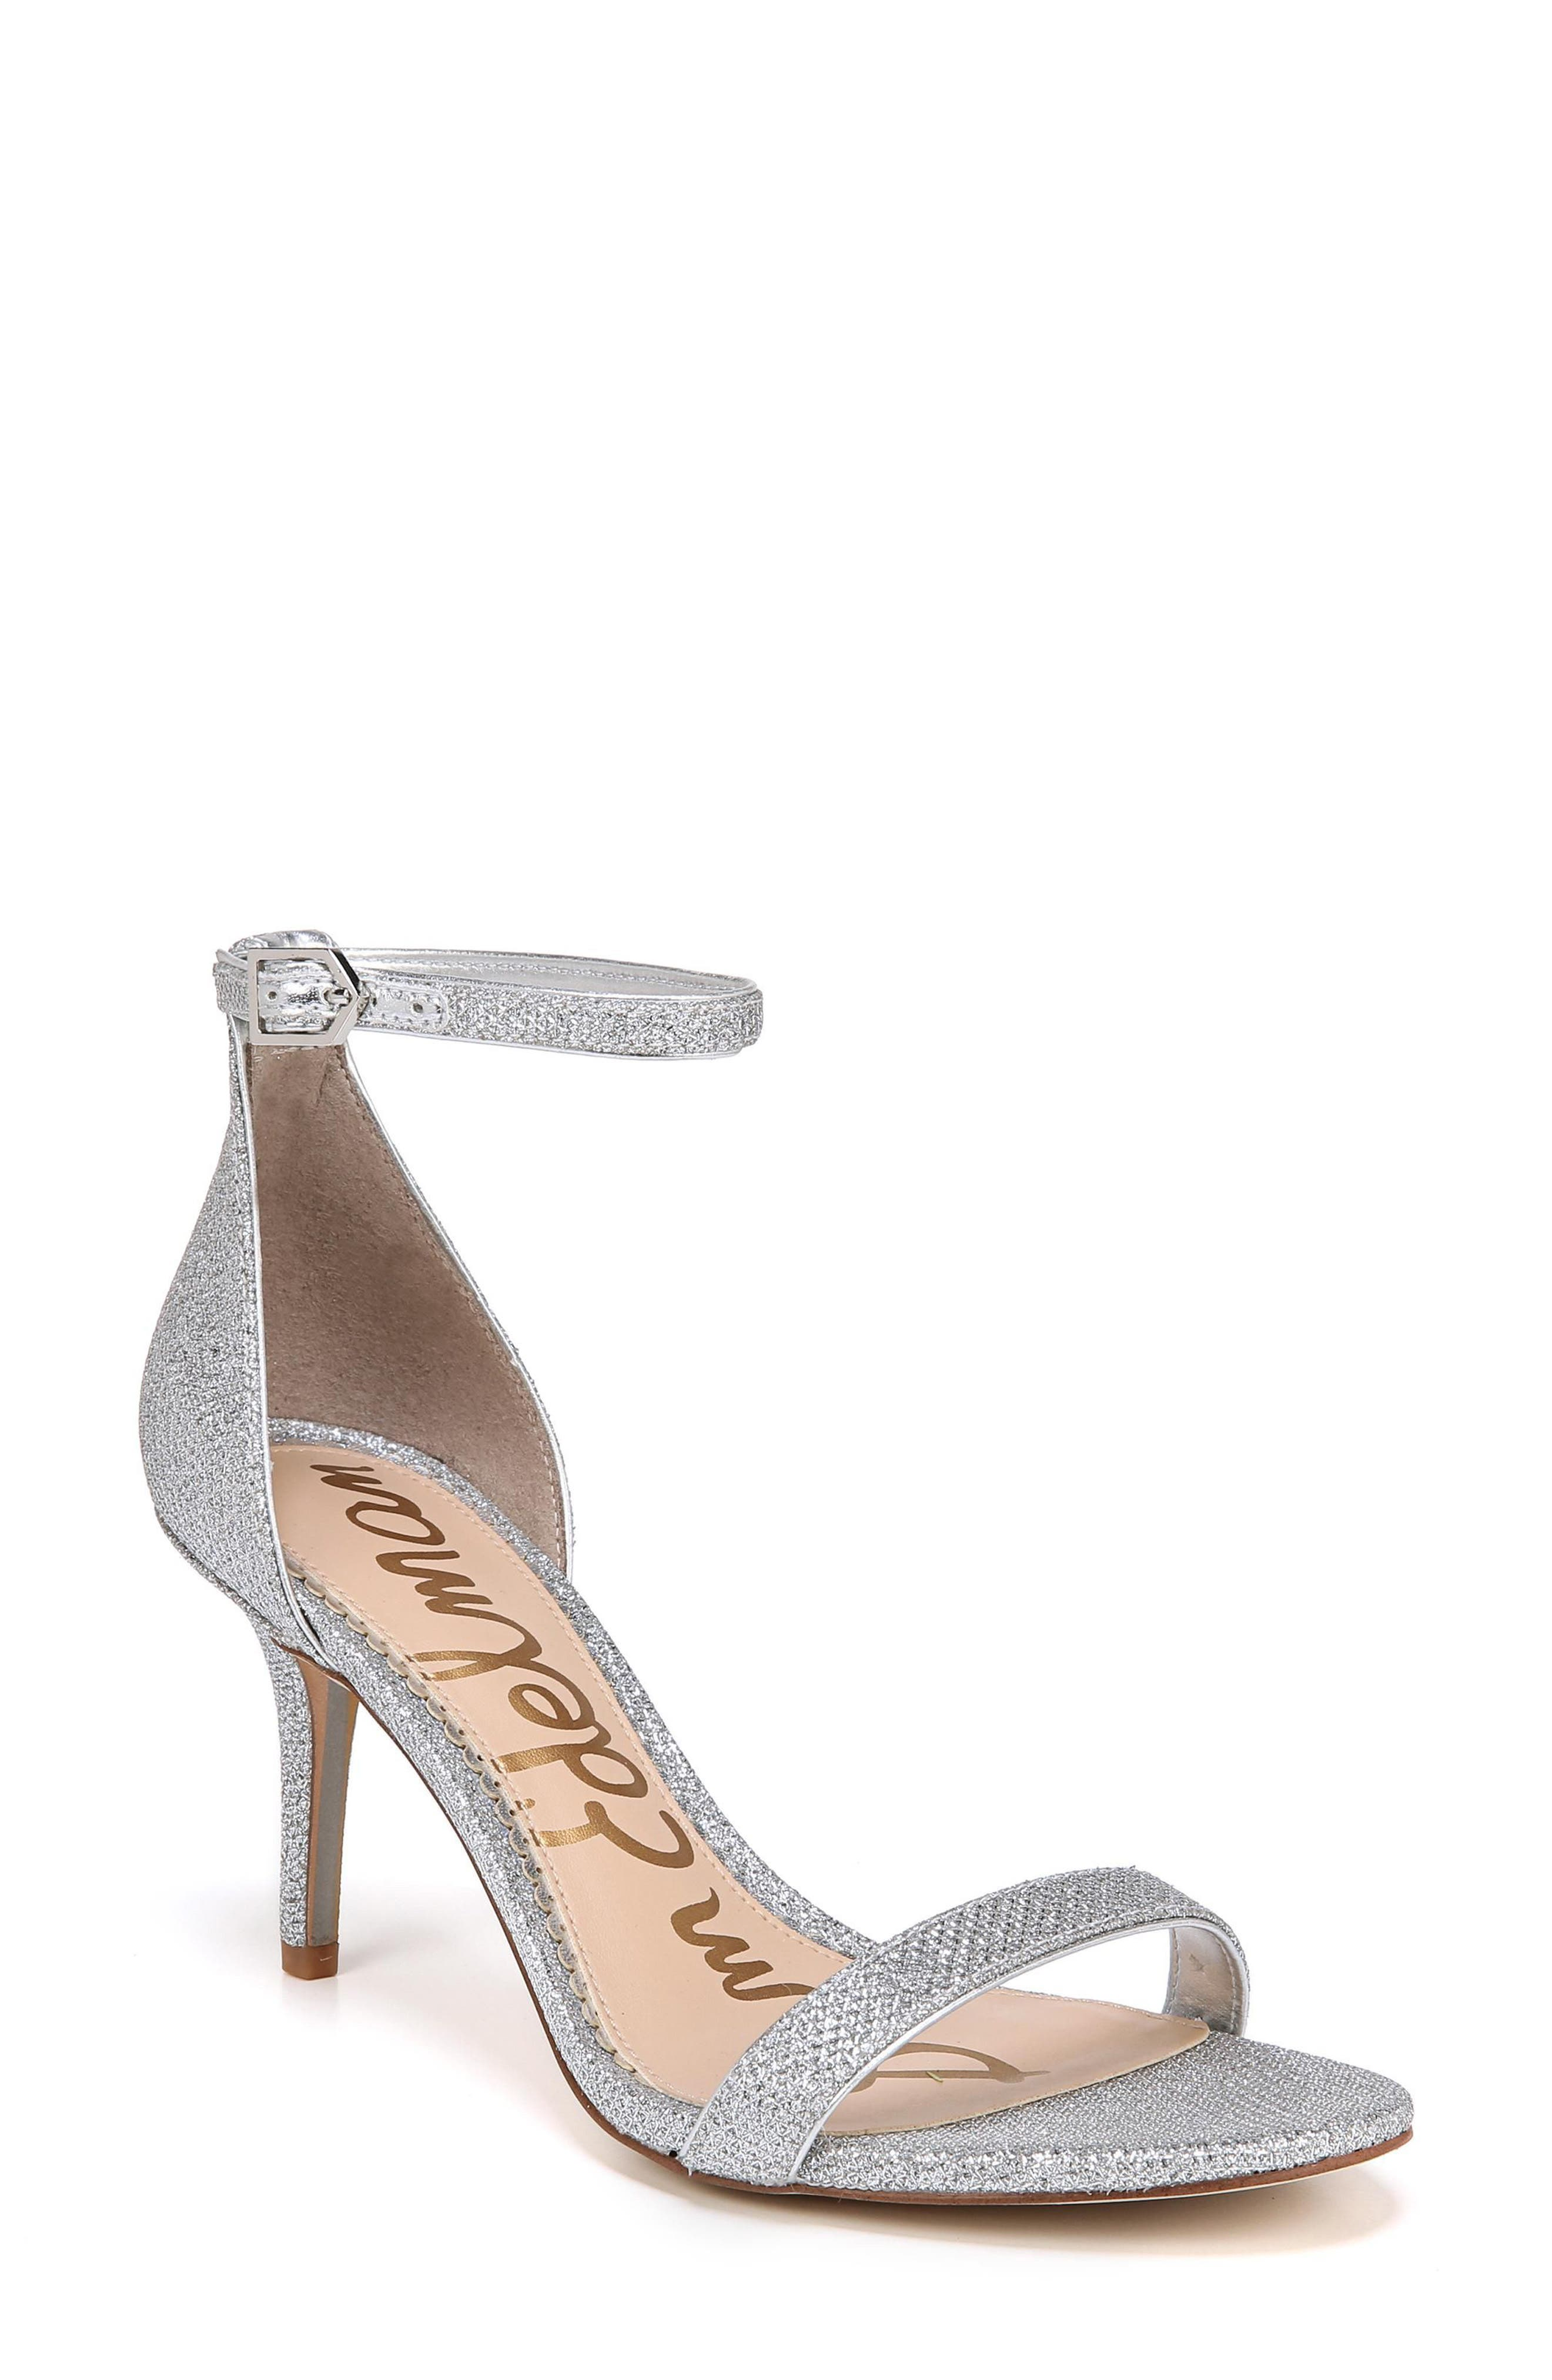 c0549b9492 Trendy Prom Shoes   Homecoming Shoes